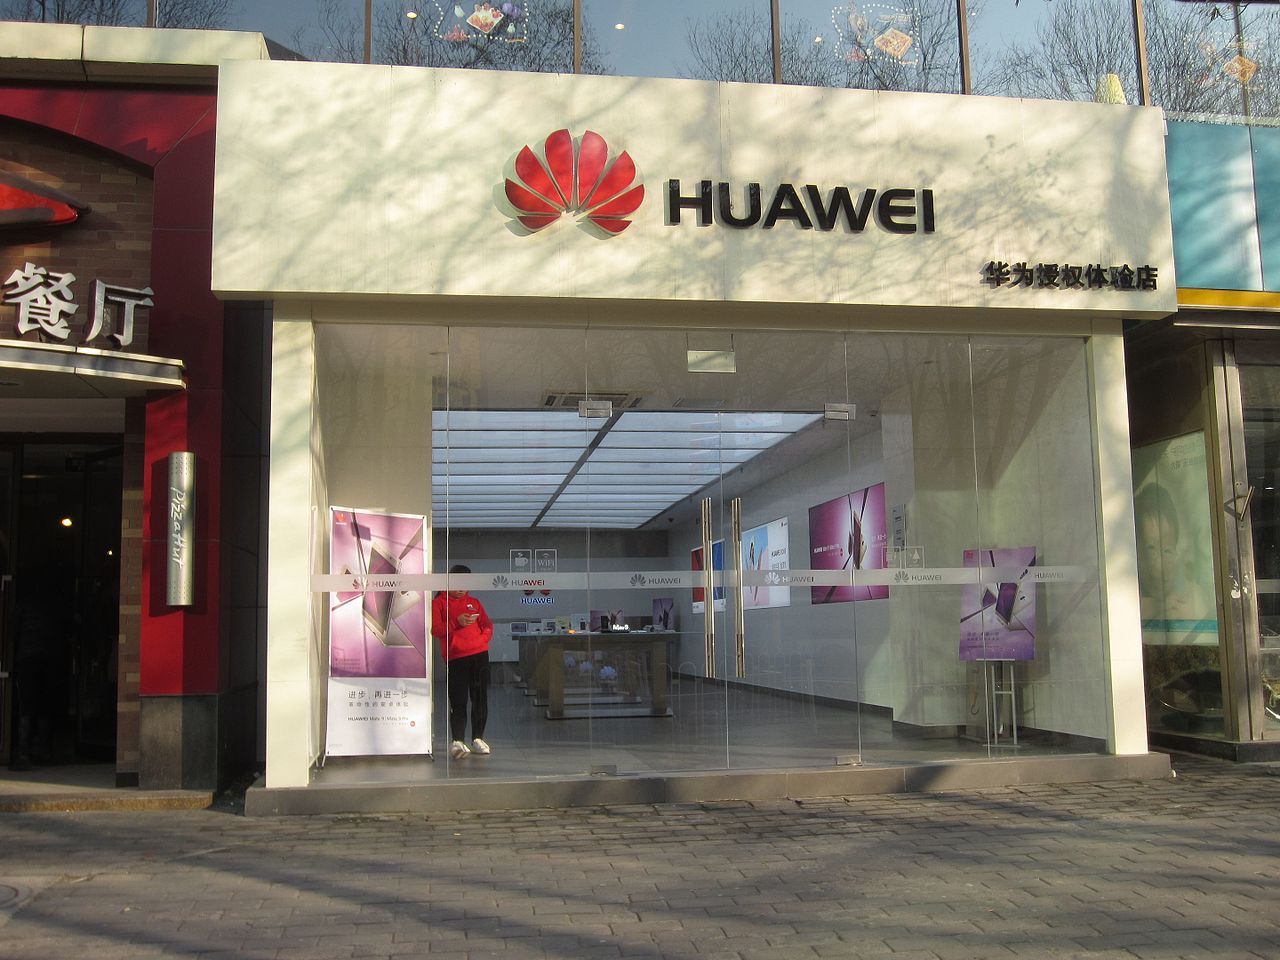 File: US President Donald Trump said he did not want to do business with Huawei for national security reasons.